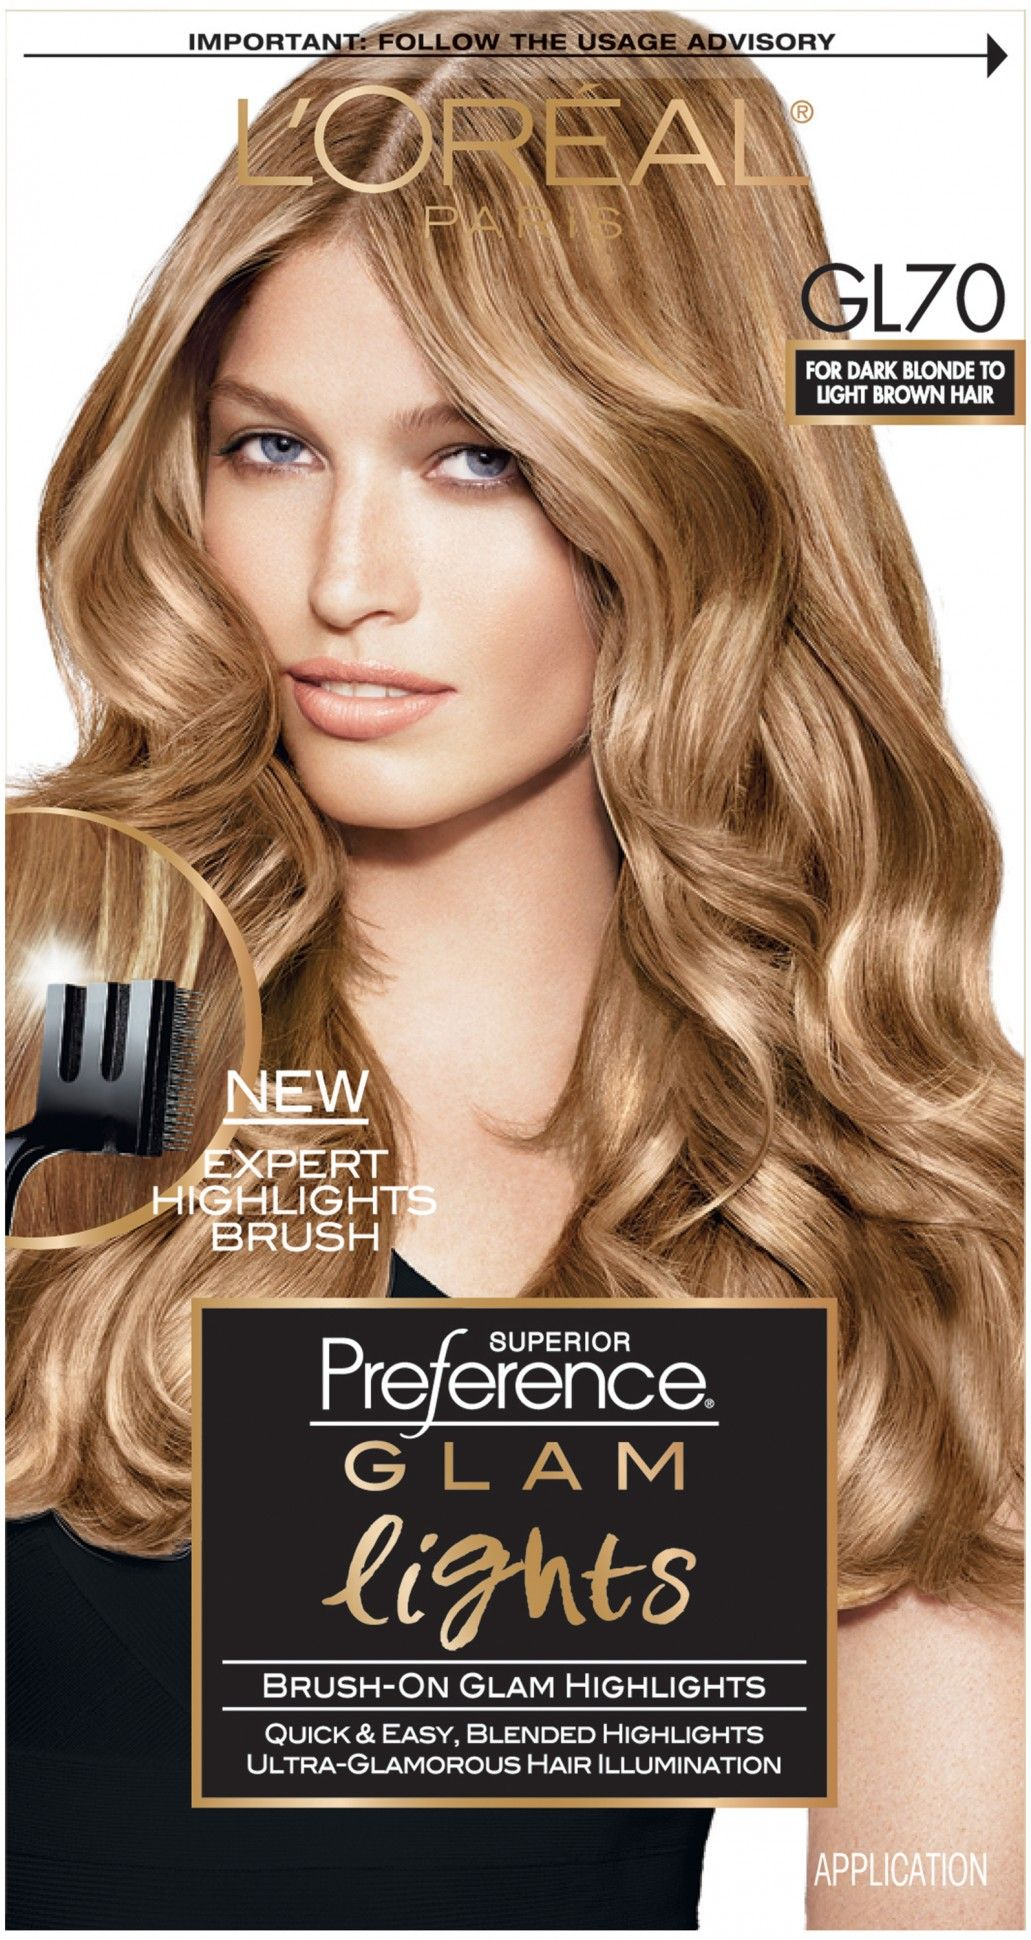 Best At Home Hair Dye For Blonde Highlights Daily Health